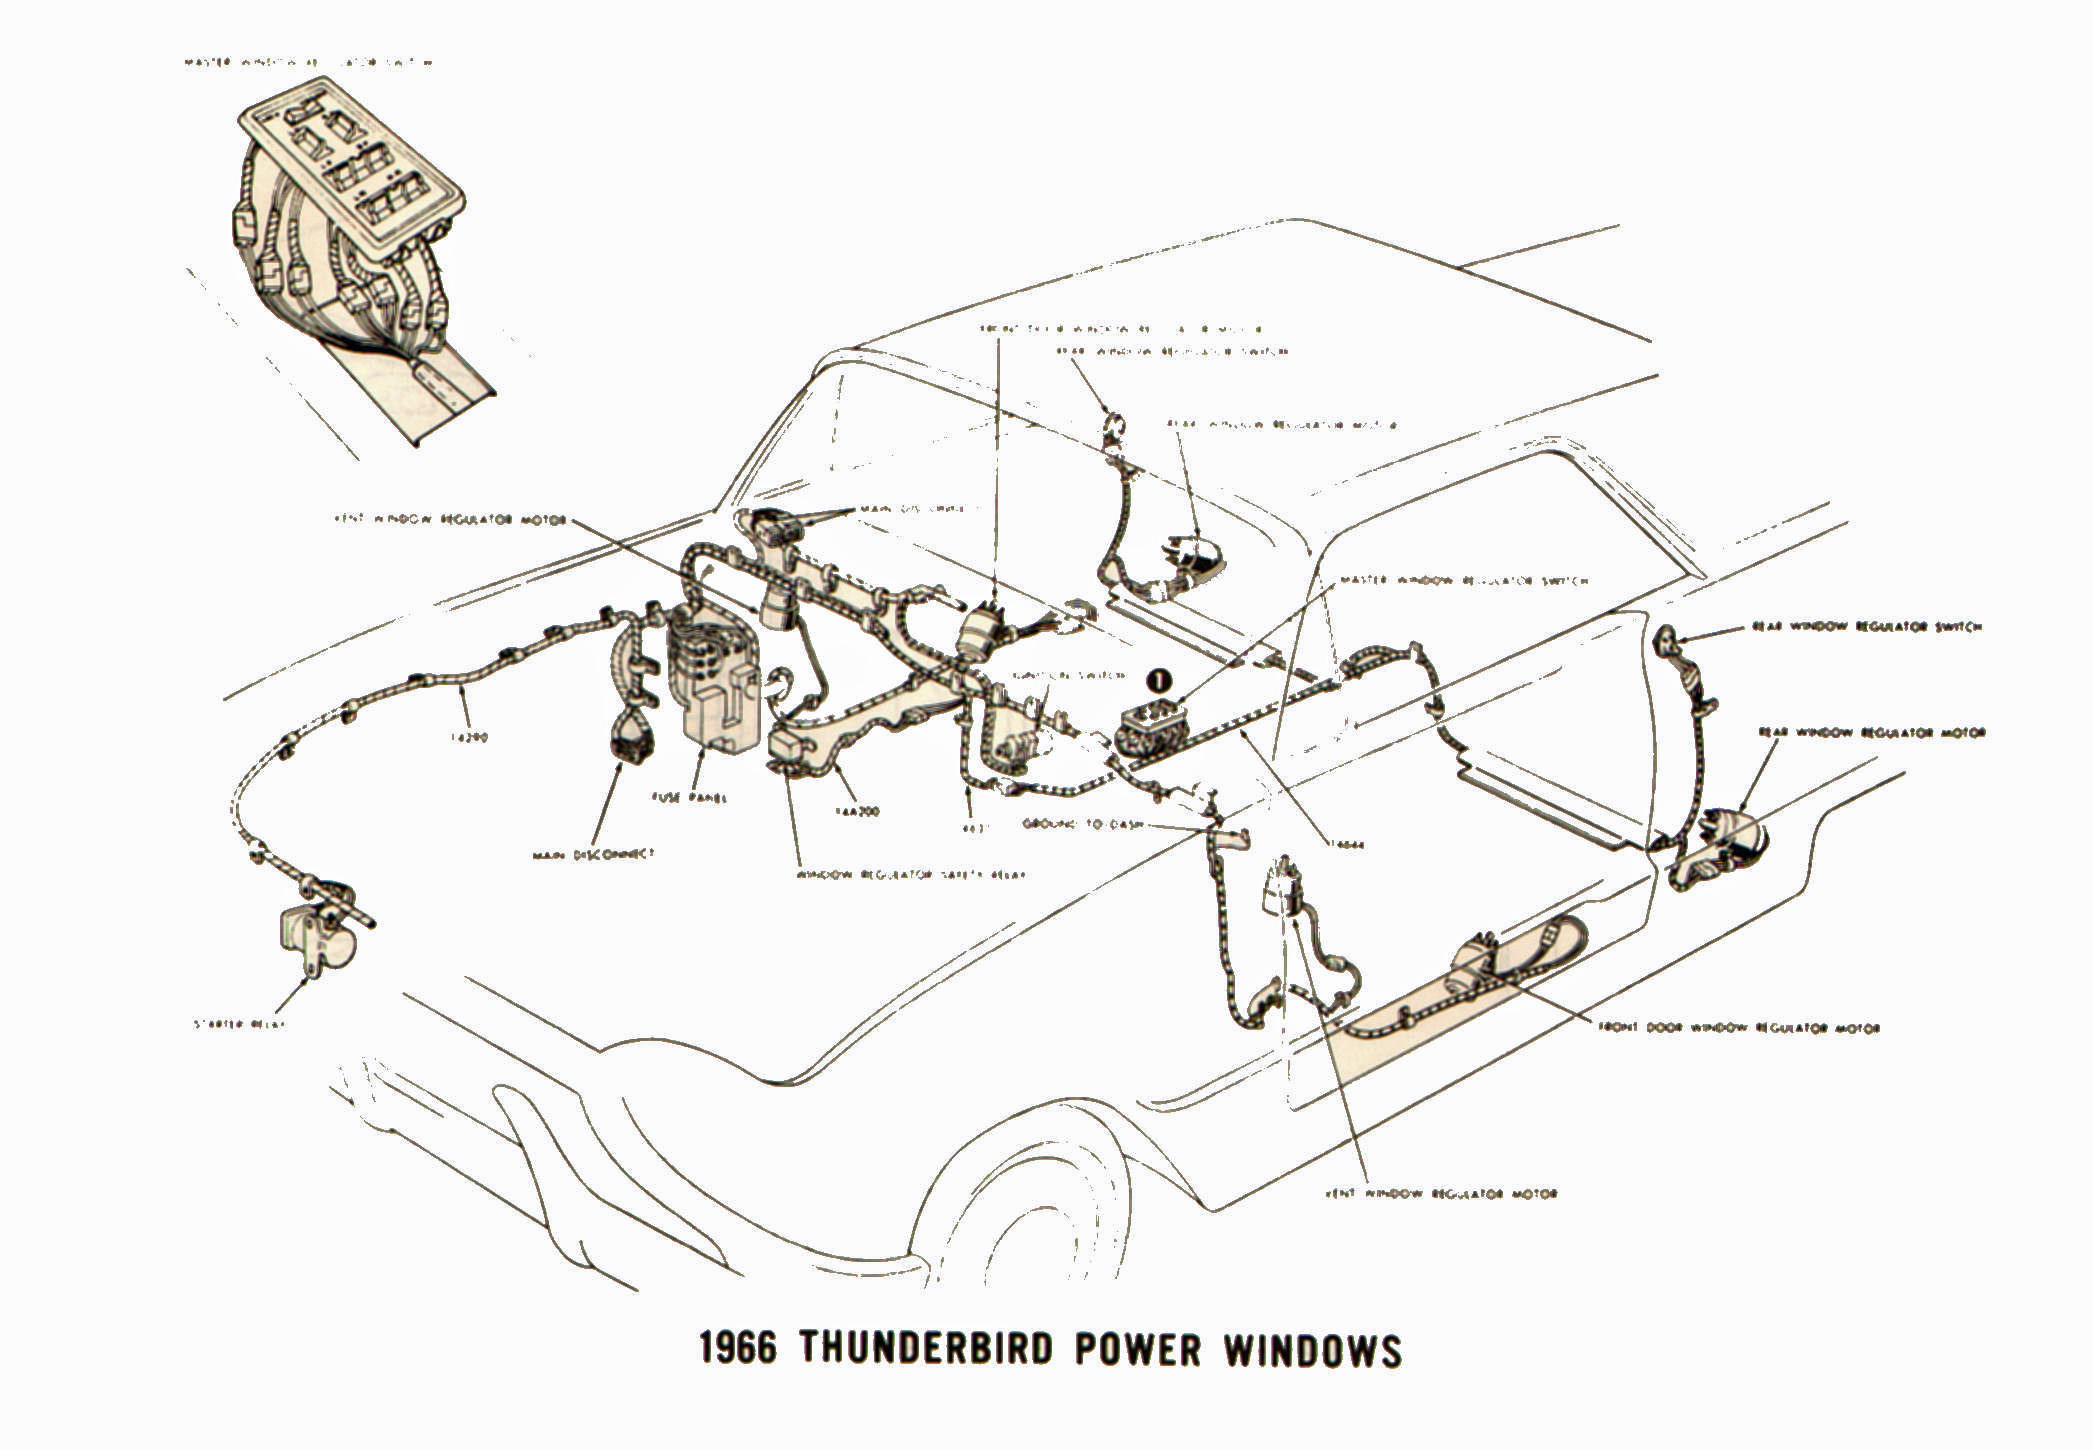 Wiring Diagram For 1964 Ford Thunderbird Trusted Schematics Radio Fuse Box Electrical Diagrams 1966